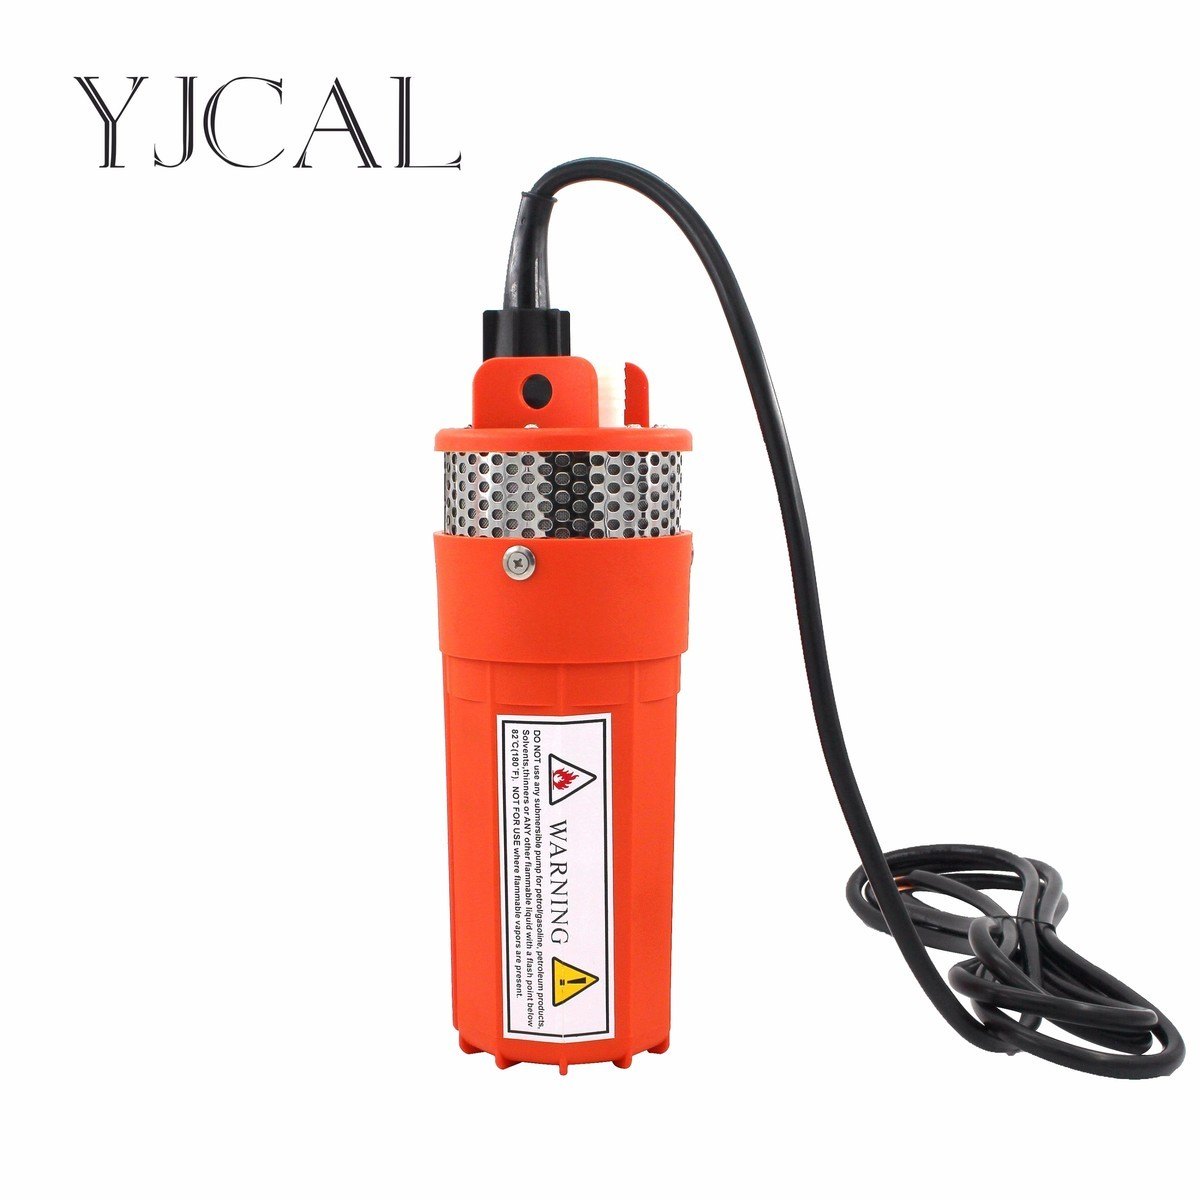 DC12/24V Submersible Solar Water Pump 70M Lift Small Power  For Outdoor Garden Fountain Deep Well Aquarium Aquario mkbp g750 24 24v 750gph bilge pump small dc submersible water pump for fountain garden irrigation swimming pool cleaning farming